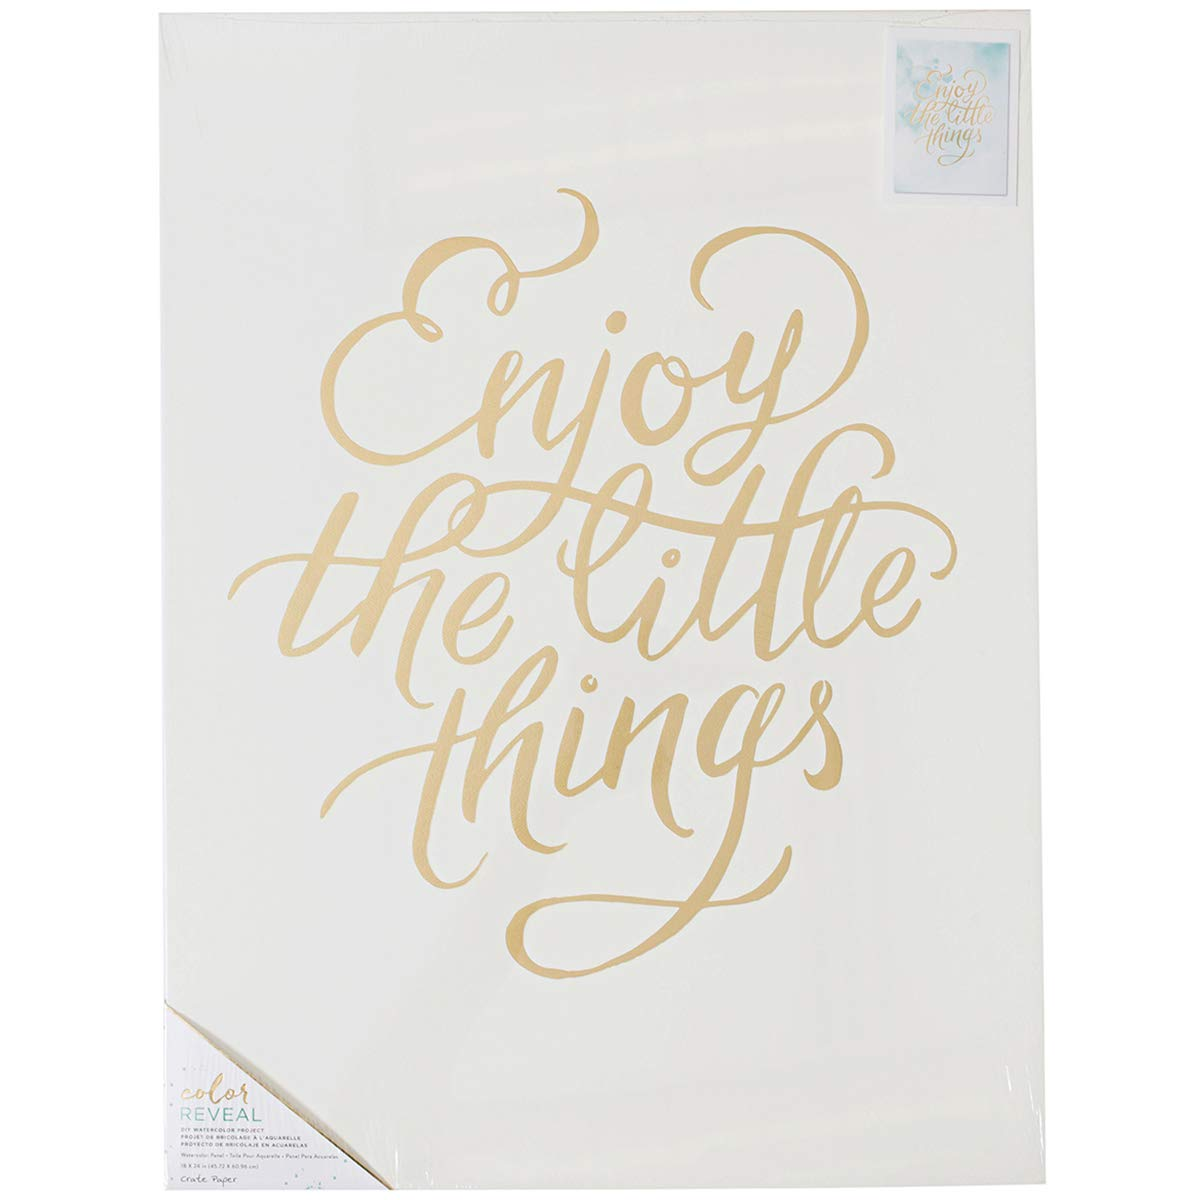 American CraftsCrate Paper Color Reveal Collection Watercolor Panel 18 x 24 Enjoy The Little Things (12 Pack)